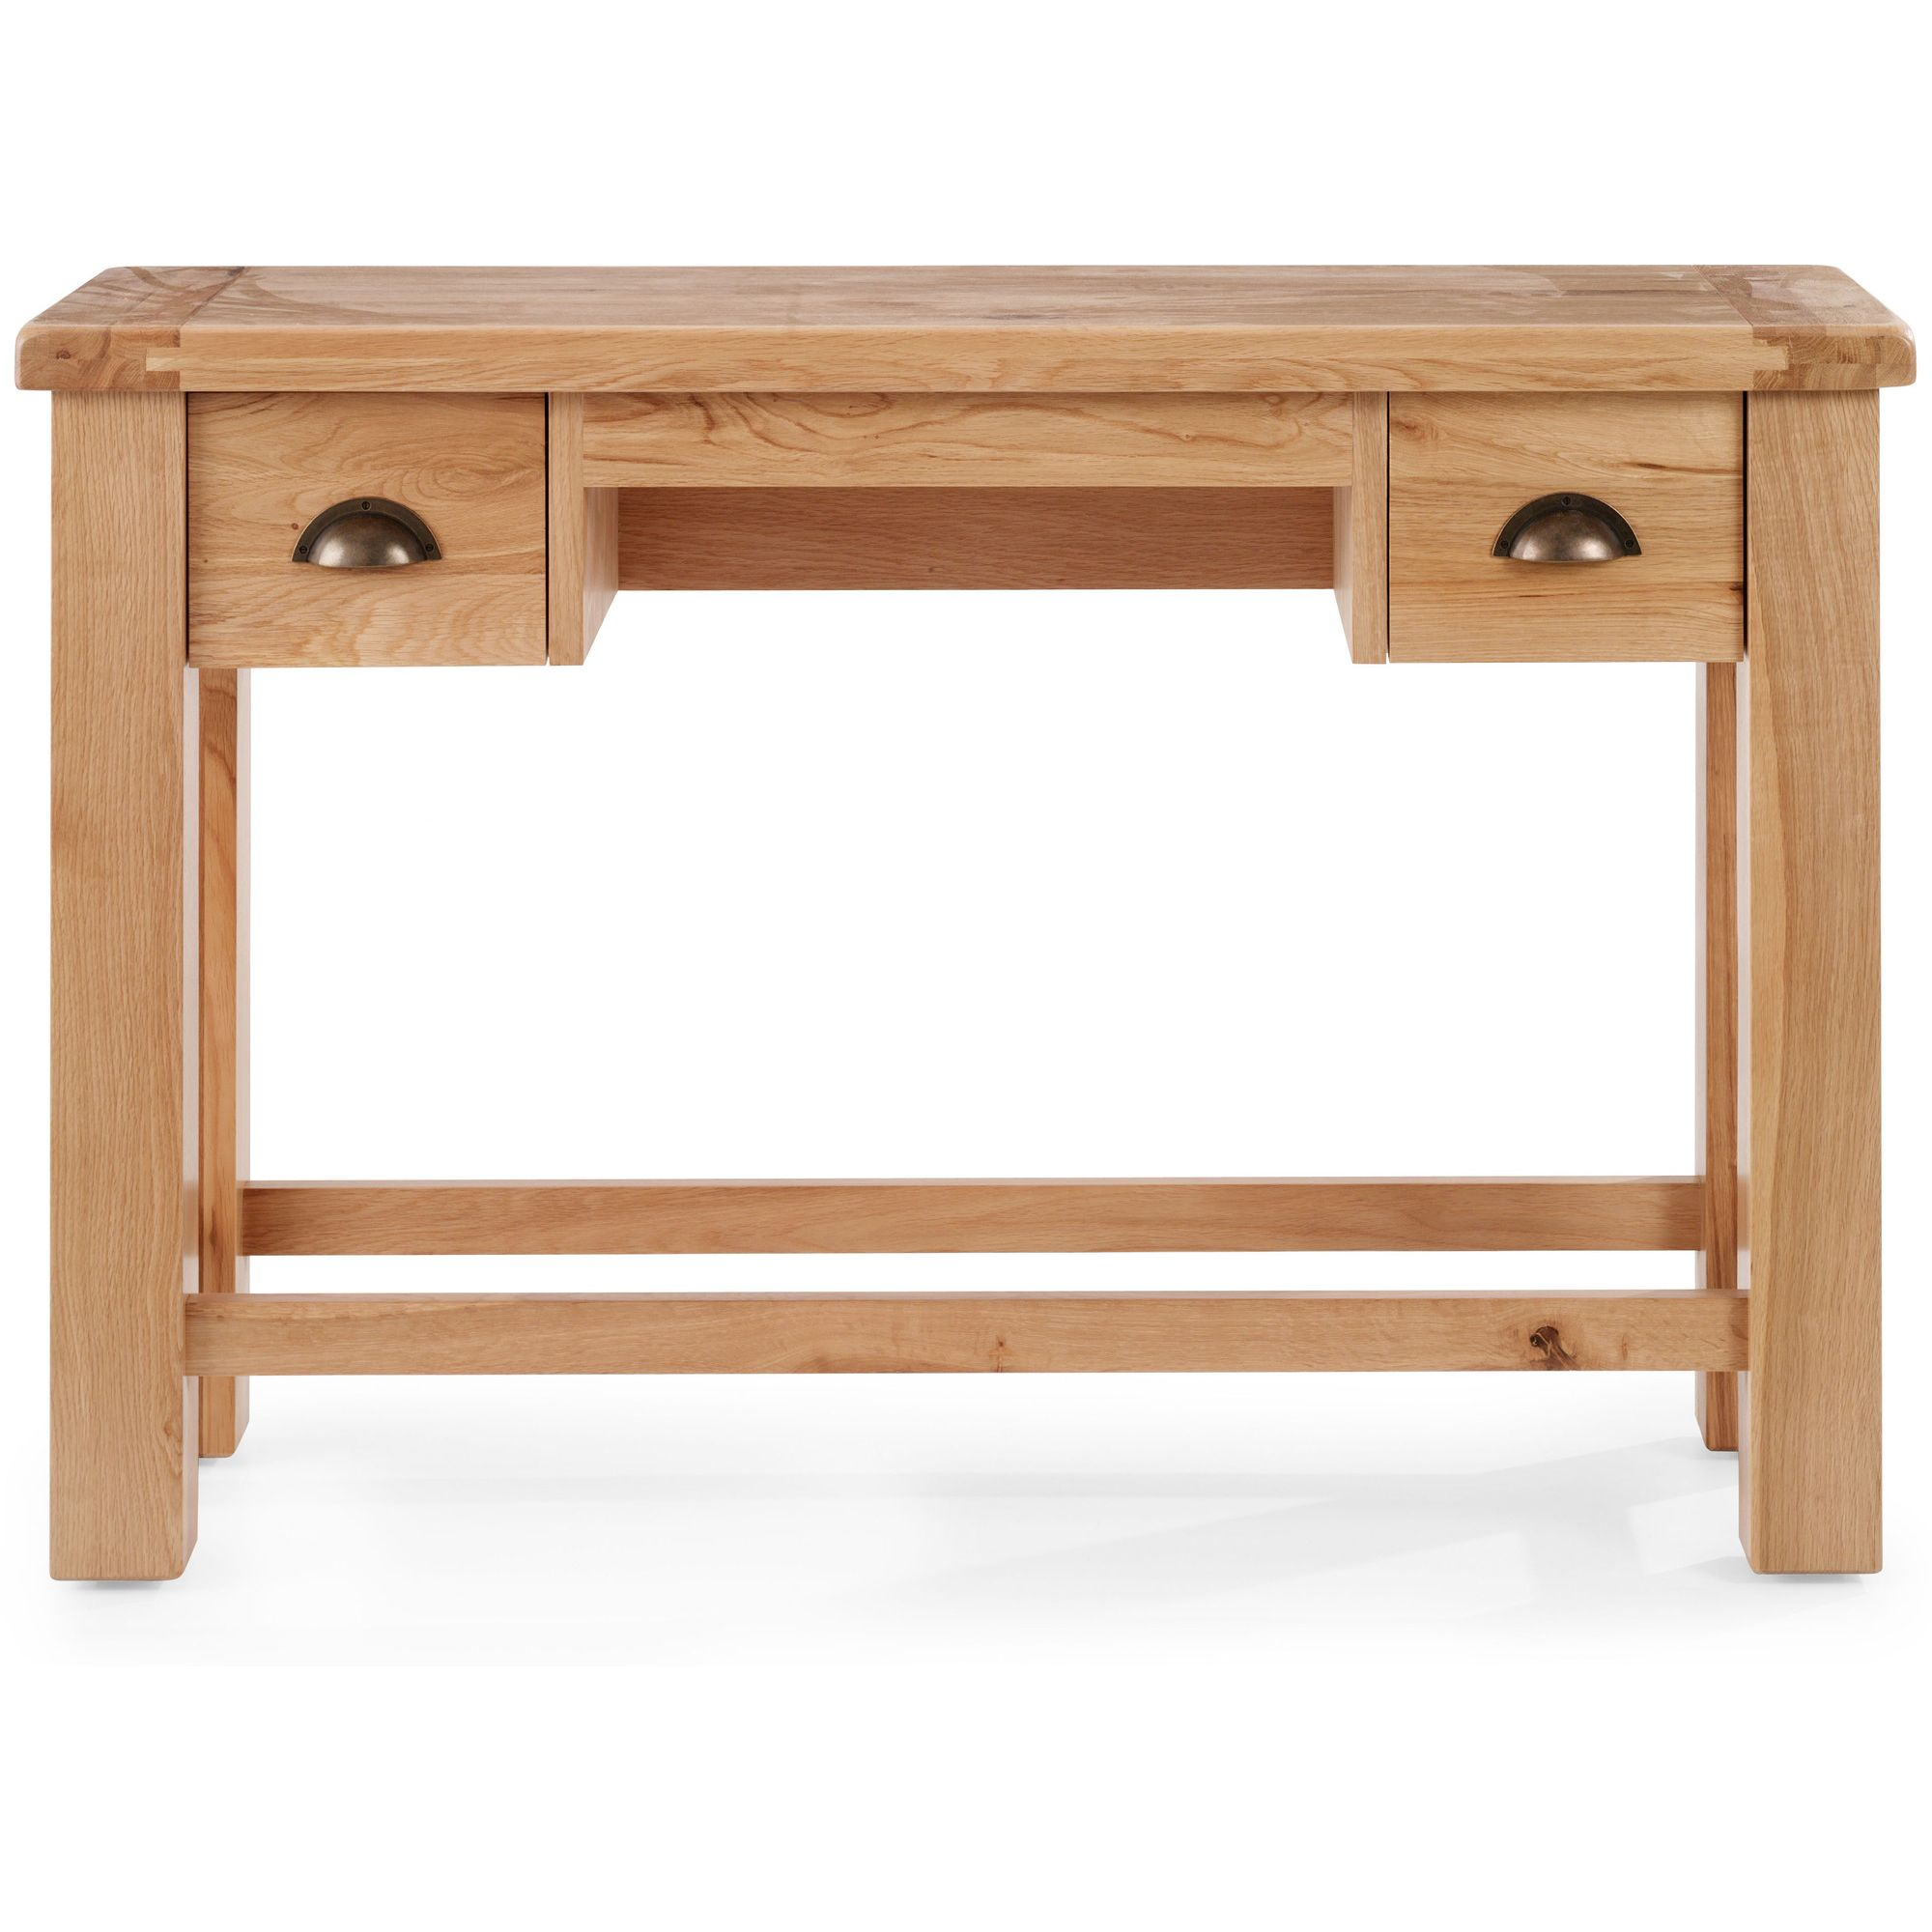 Originals Normandy Dressing Table at Tesco Direct